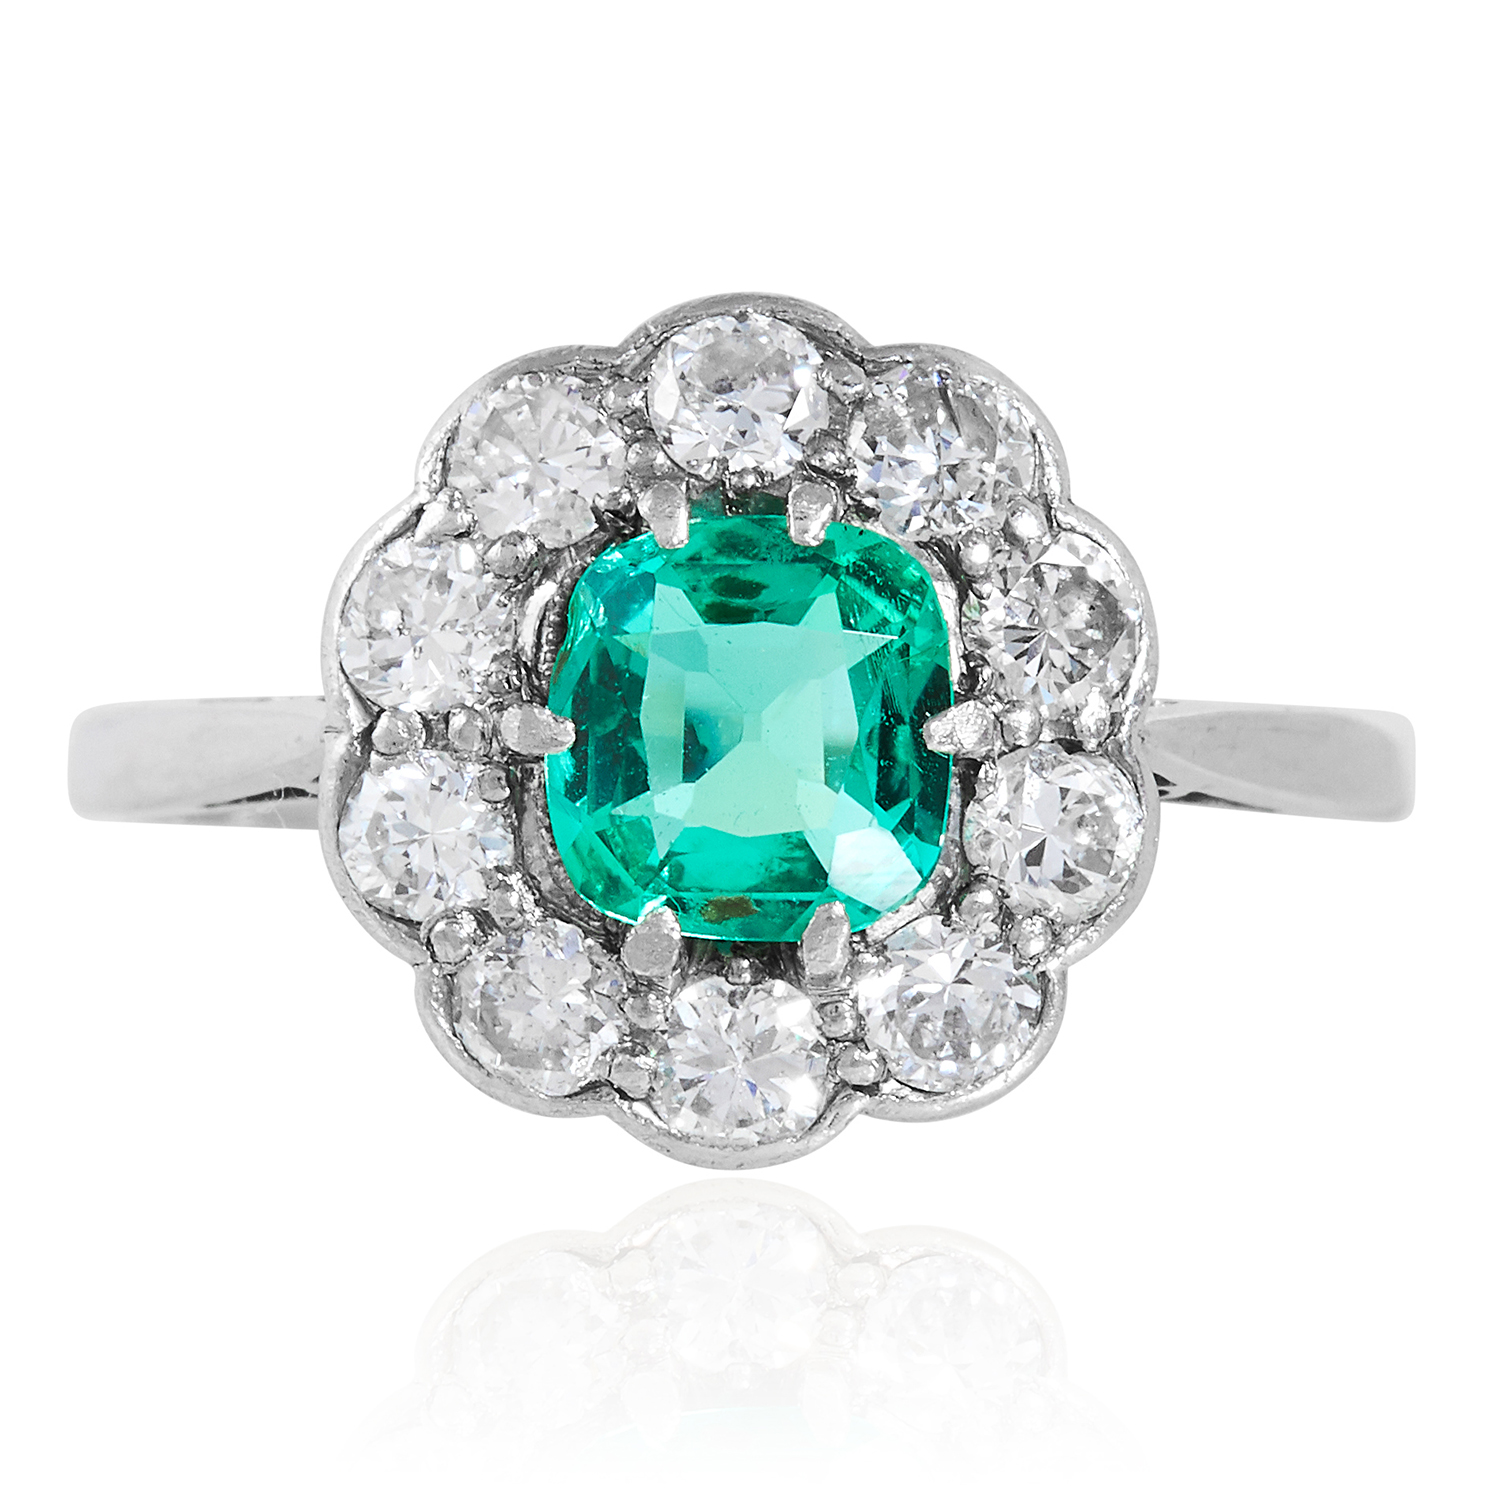 Los 40 - AN EMERALD AND DIAMOND CLUSTER RING in 18ct gold and platinum, set with a cushion cut emerald of